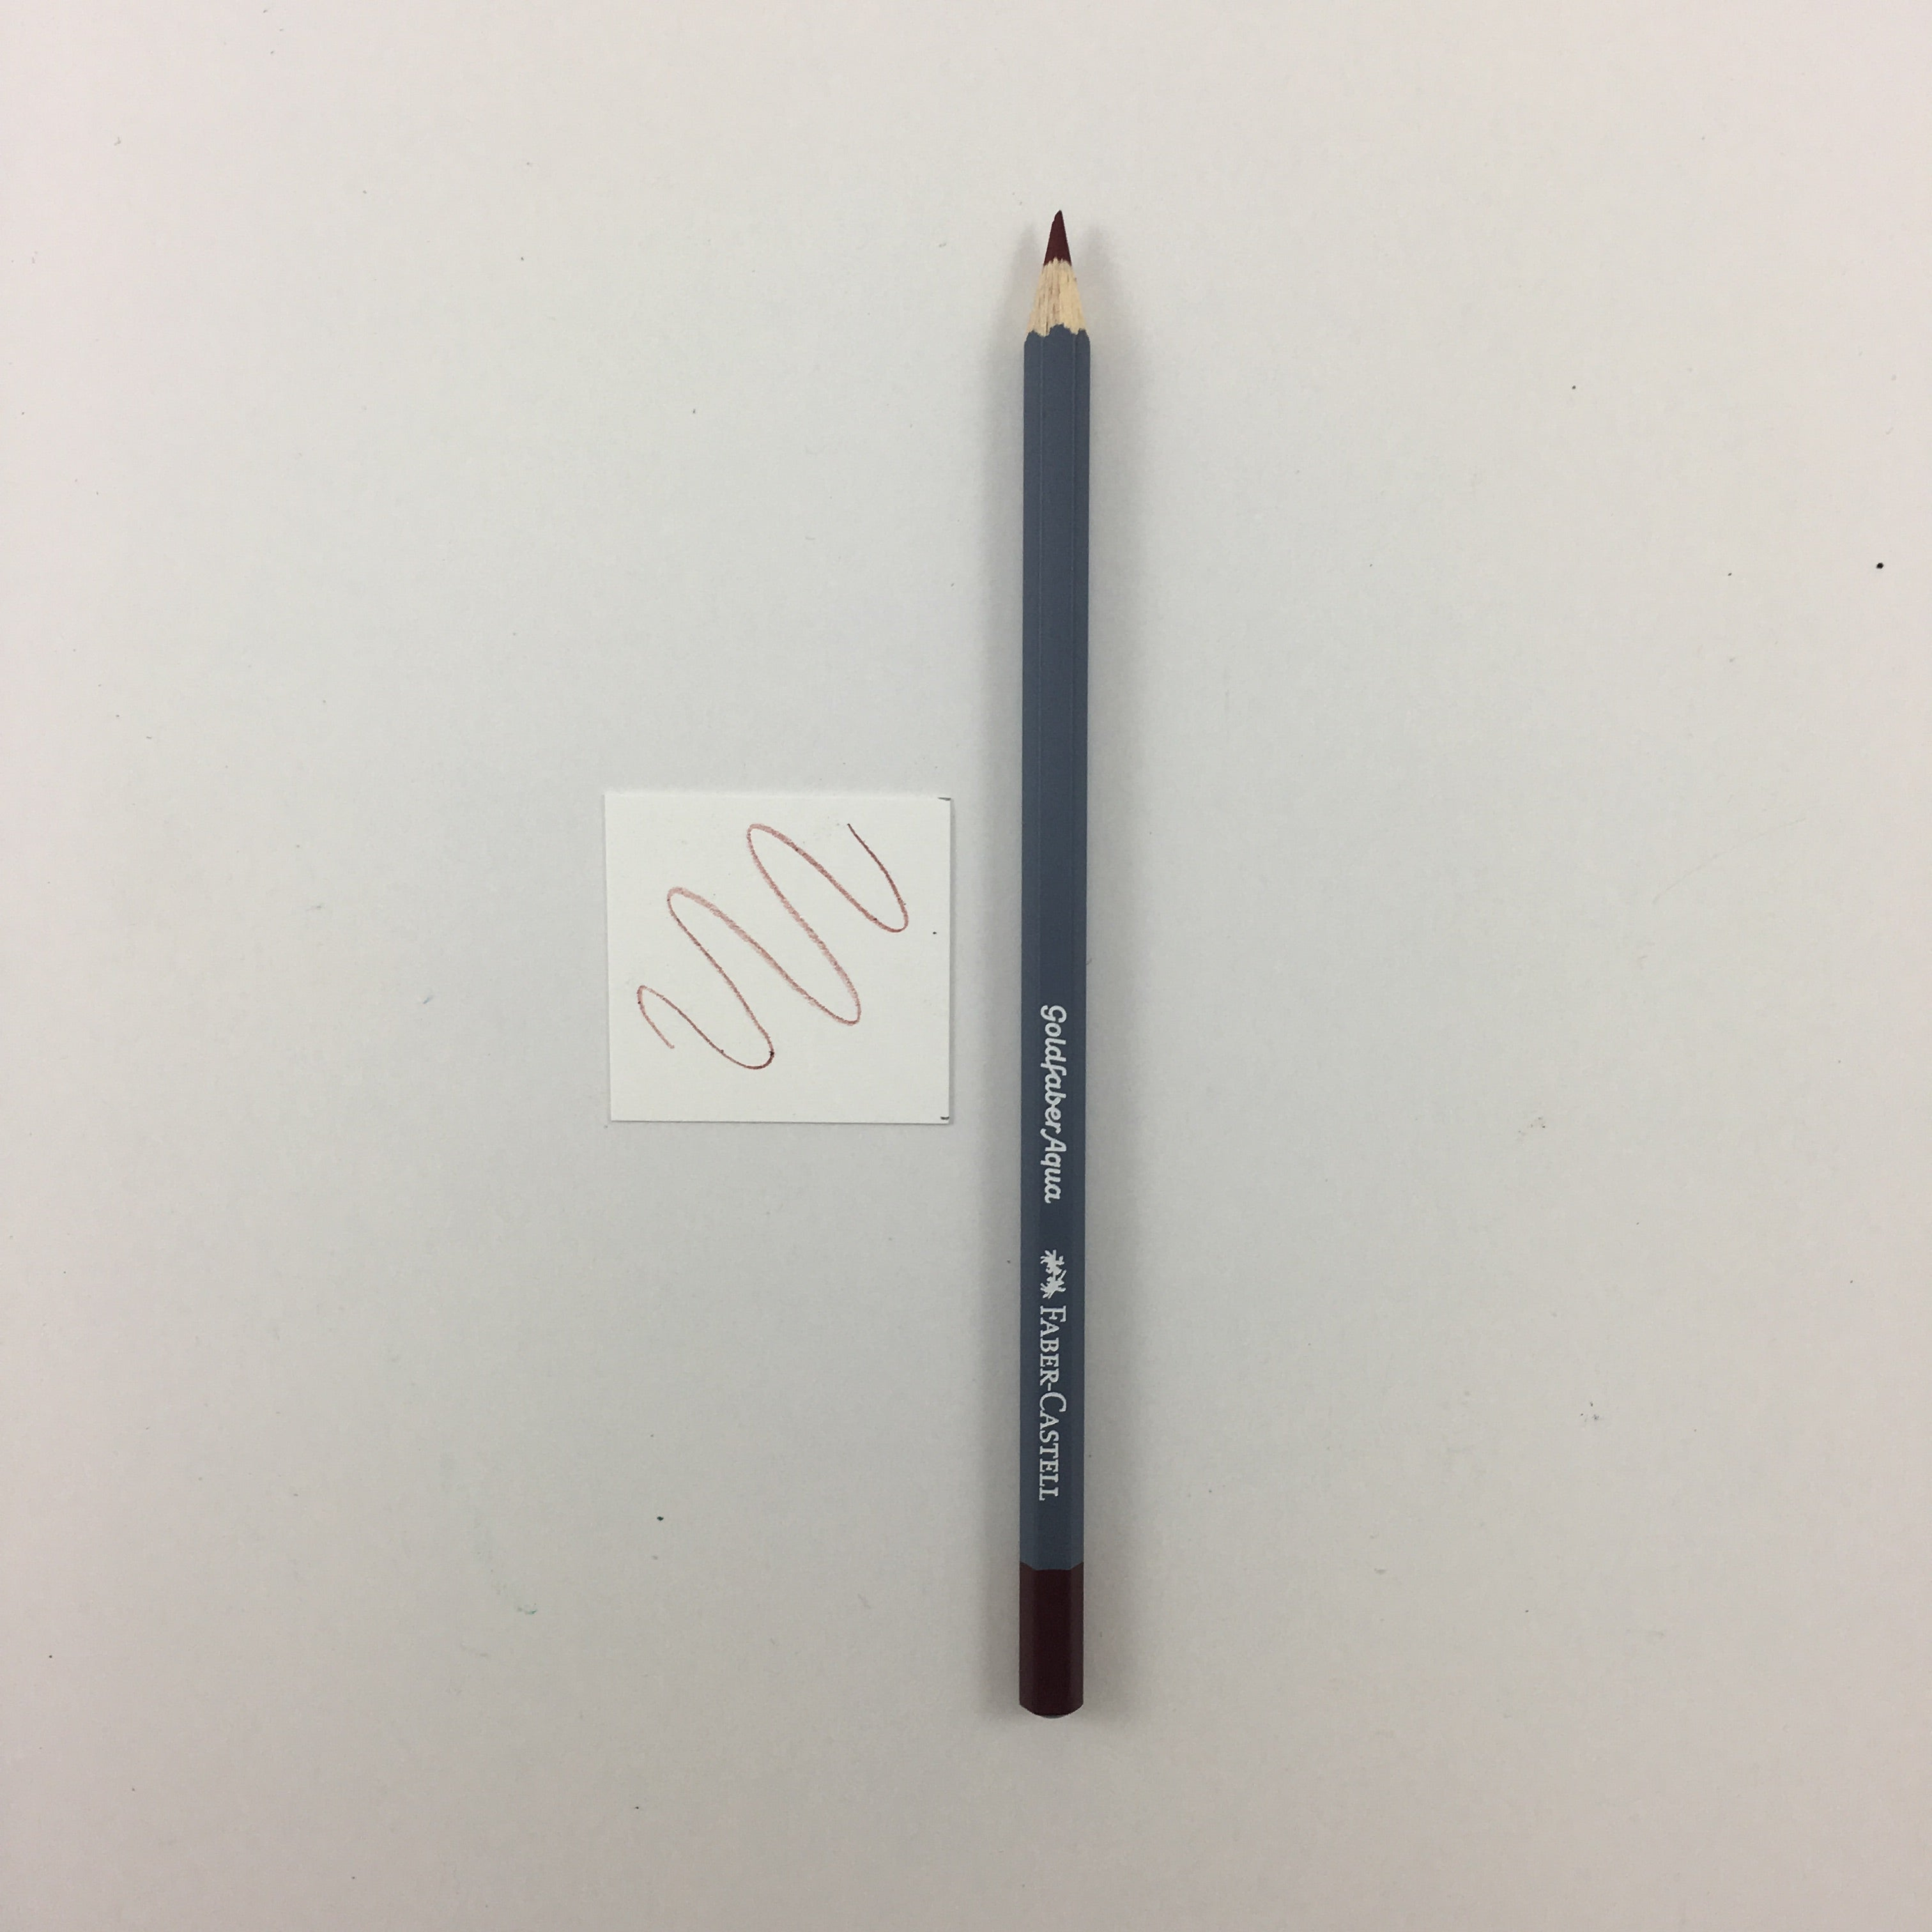 Faber-Castell Goldfaber Aqua Watercolor Pencils - Individuals - 192 - Indian Red by Faber-Castell - K. A. Artist Shop